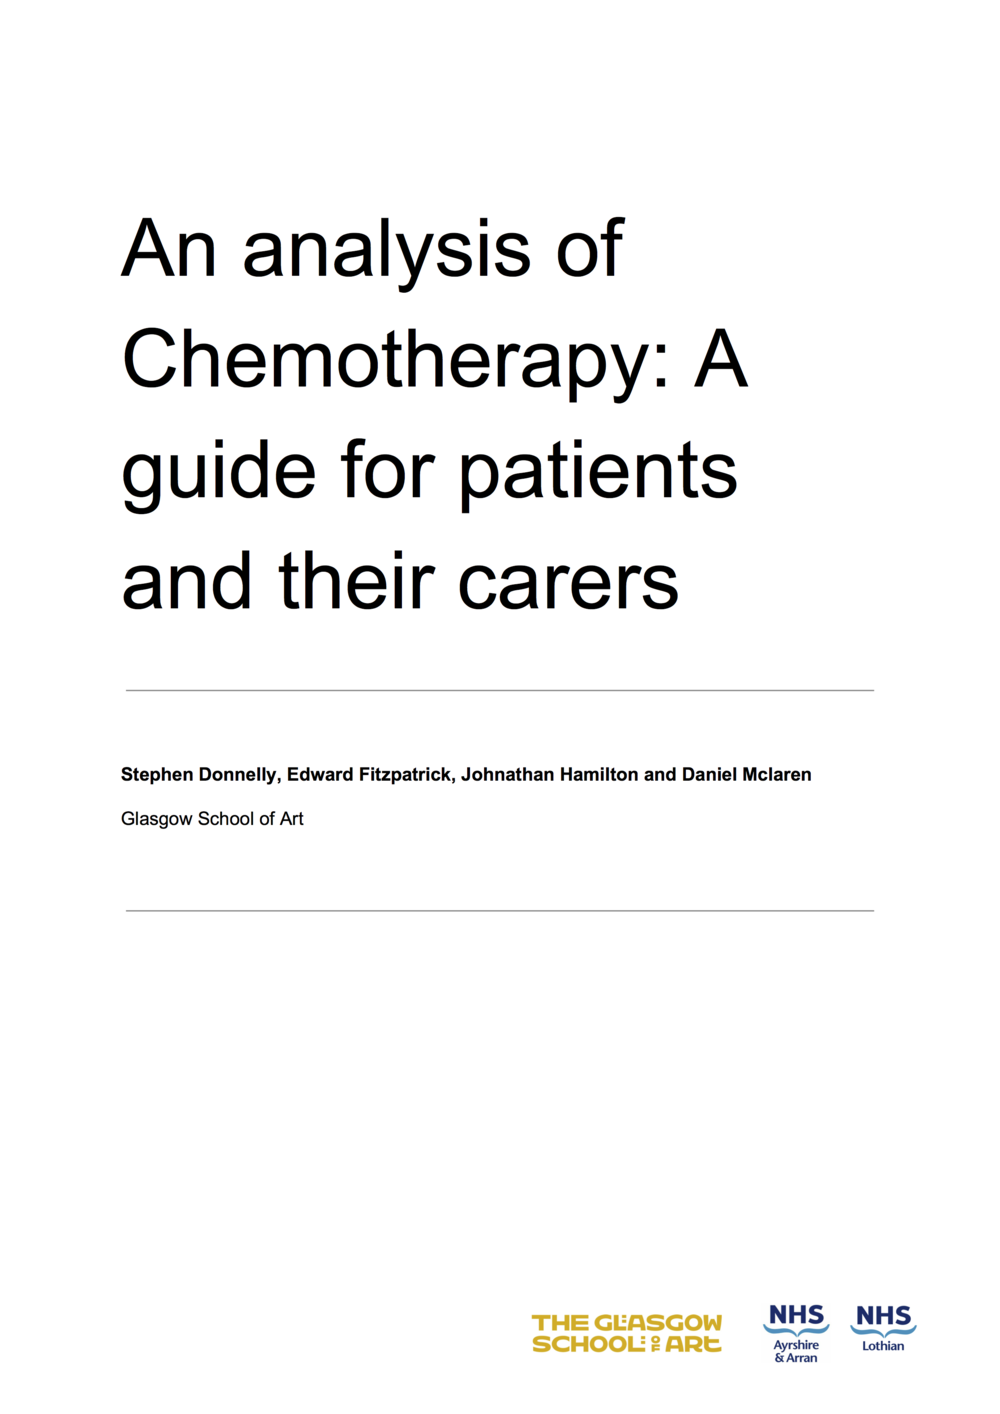 An analysis of Chemotherapy A guide for patients and their carers (dragged).png